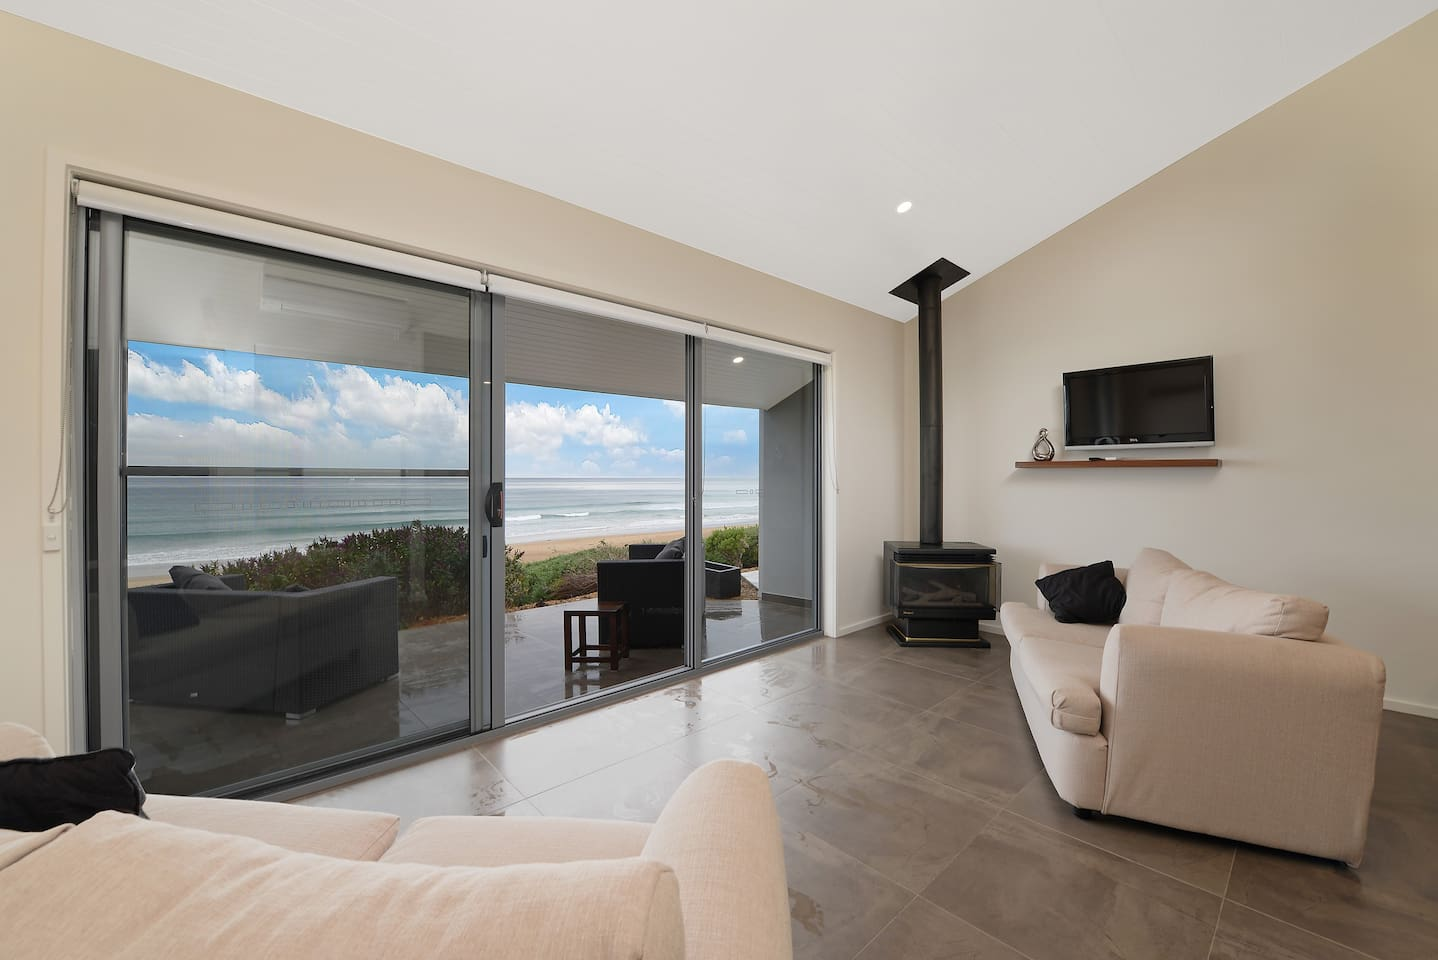 Beach view from bed and lounge area. gas fire for the winter nights